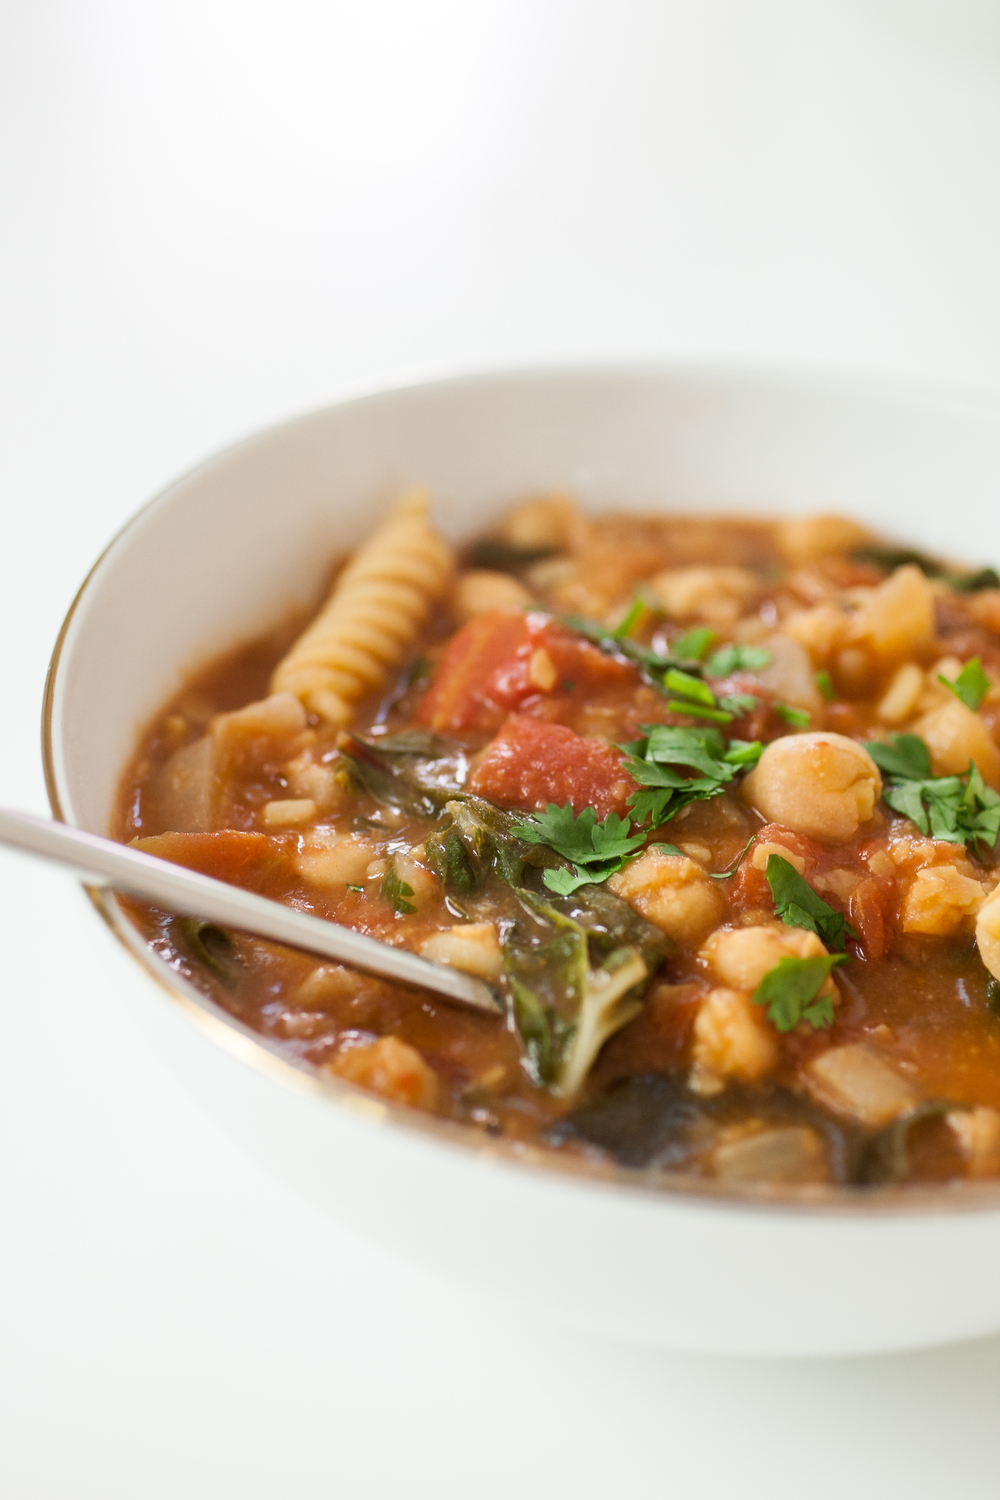 Produce On Parade - Chickpea & Chard Stew - A quick and easy flavorful stew that's as healthy as it is tasty. Full of protein and fiber, this hearty stew will fill you up and keep you satisfied. It's a staple in our house!